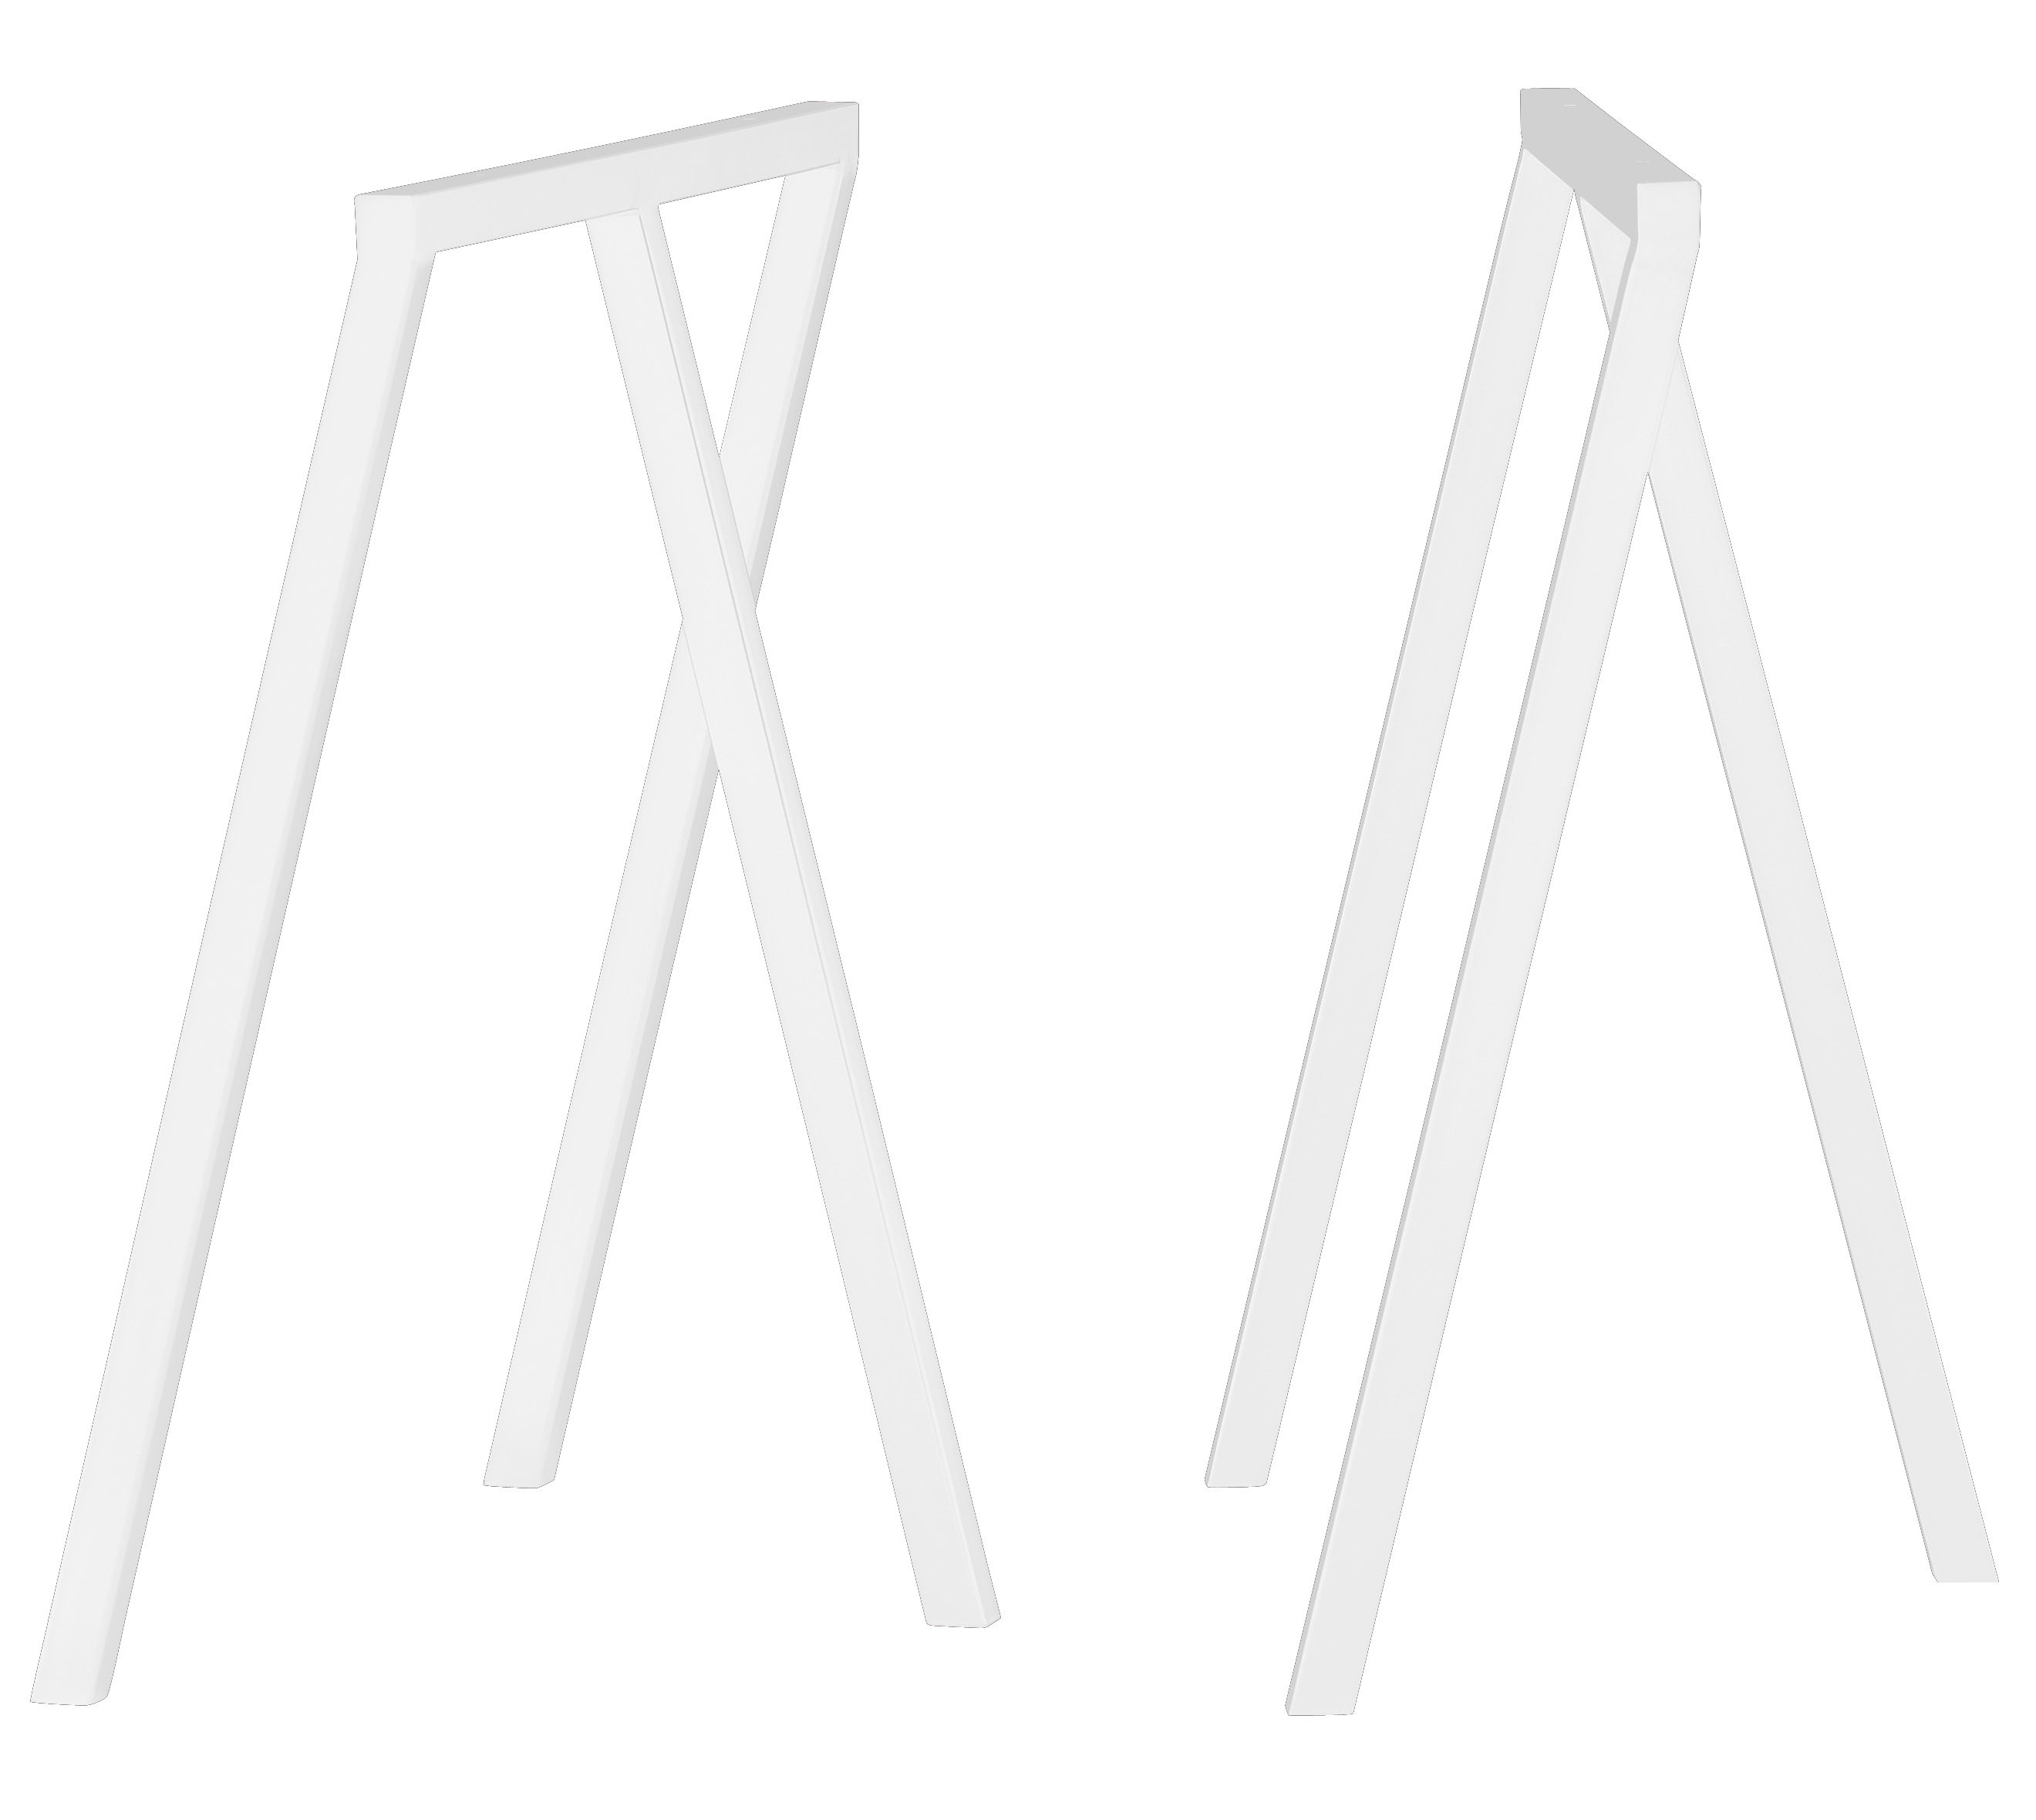 Furniture - Office Furniture - Loop Pair of trestles - Set of 2 by Hay - White - Lacquered steel